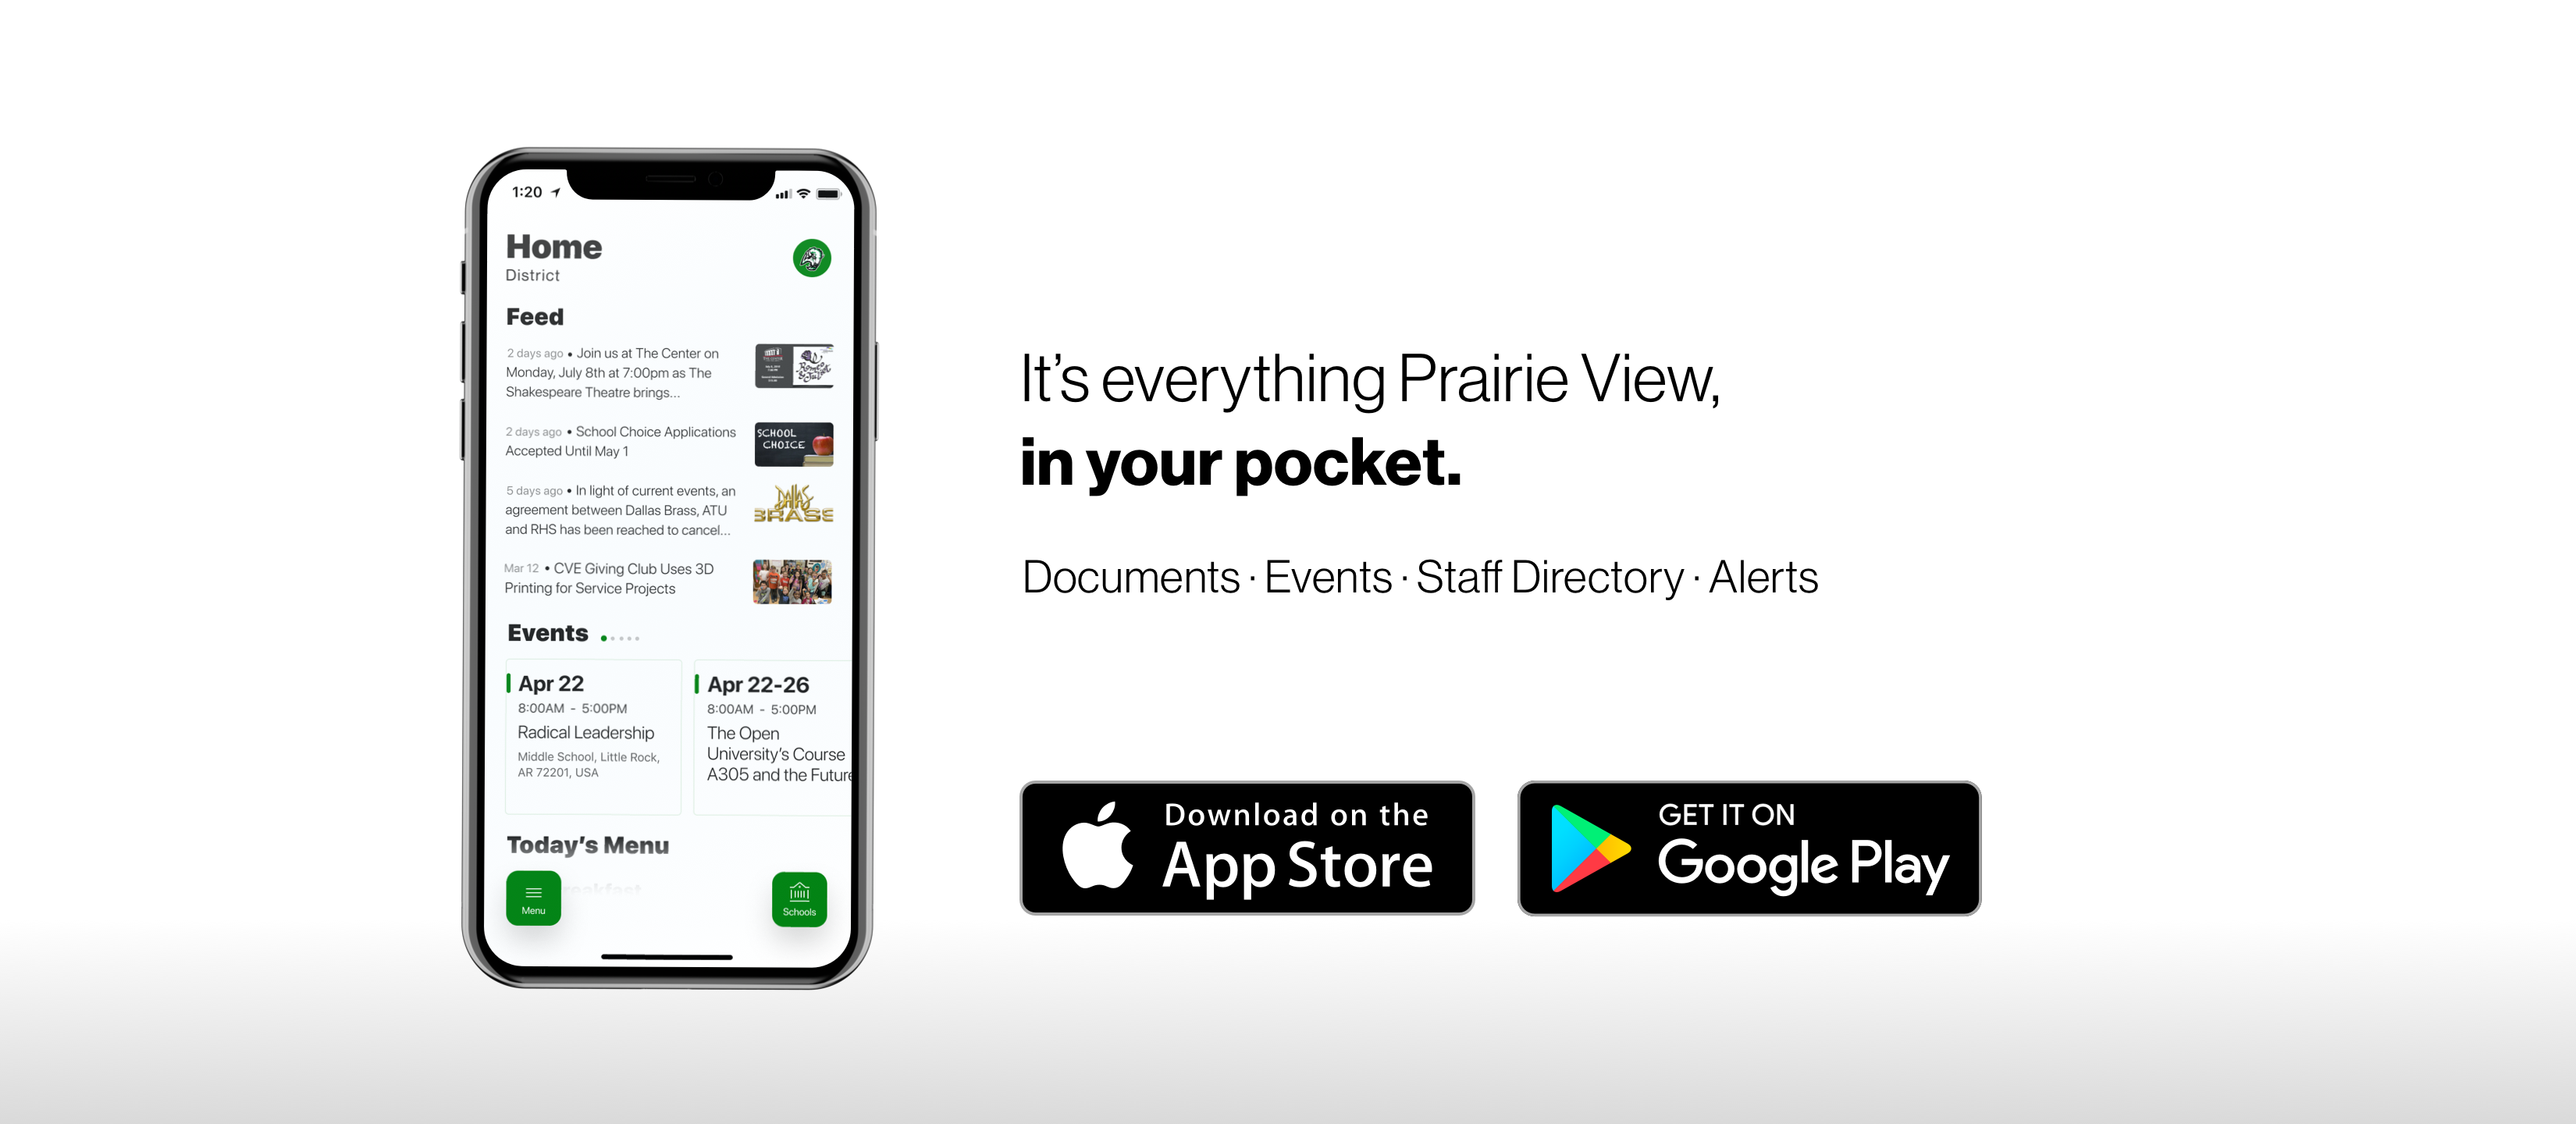 download the mobile app in Apple and Google Play stores